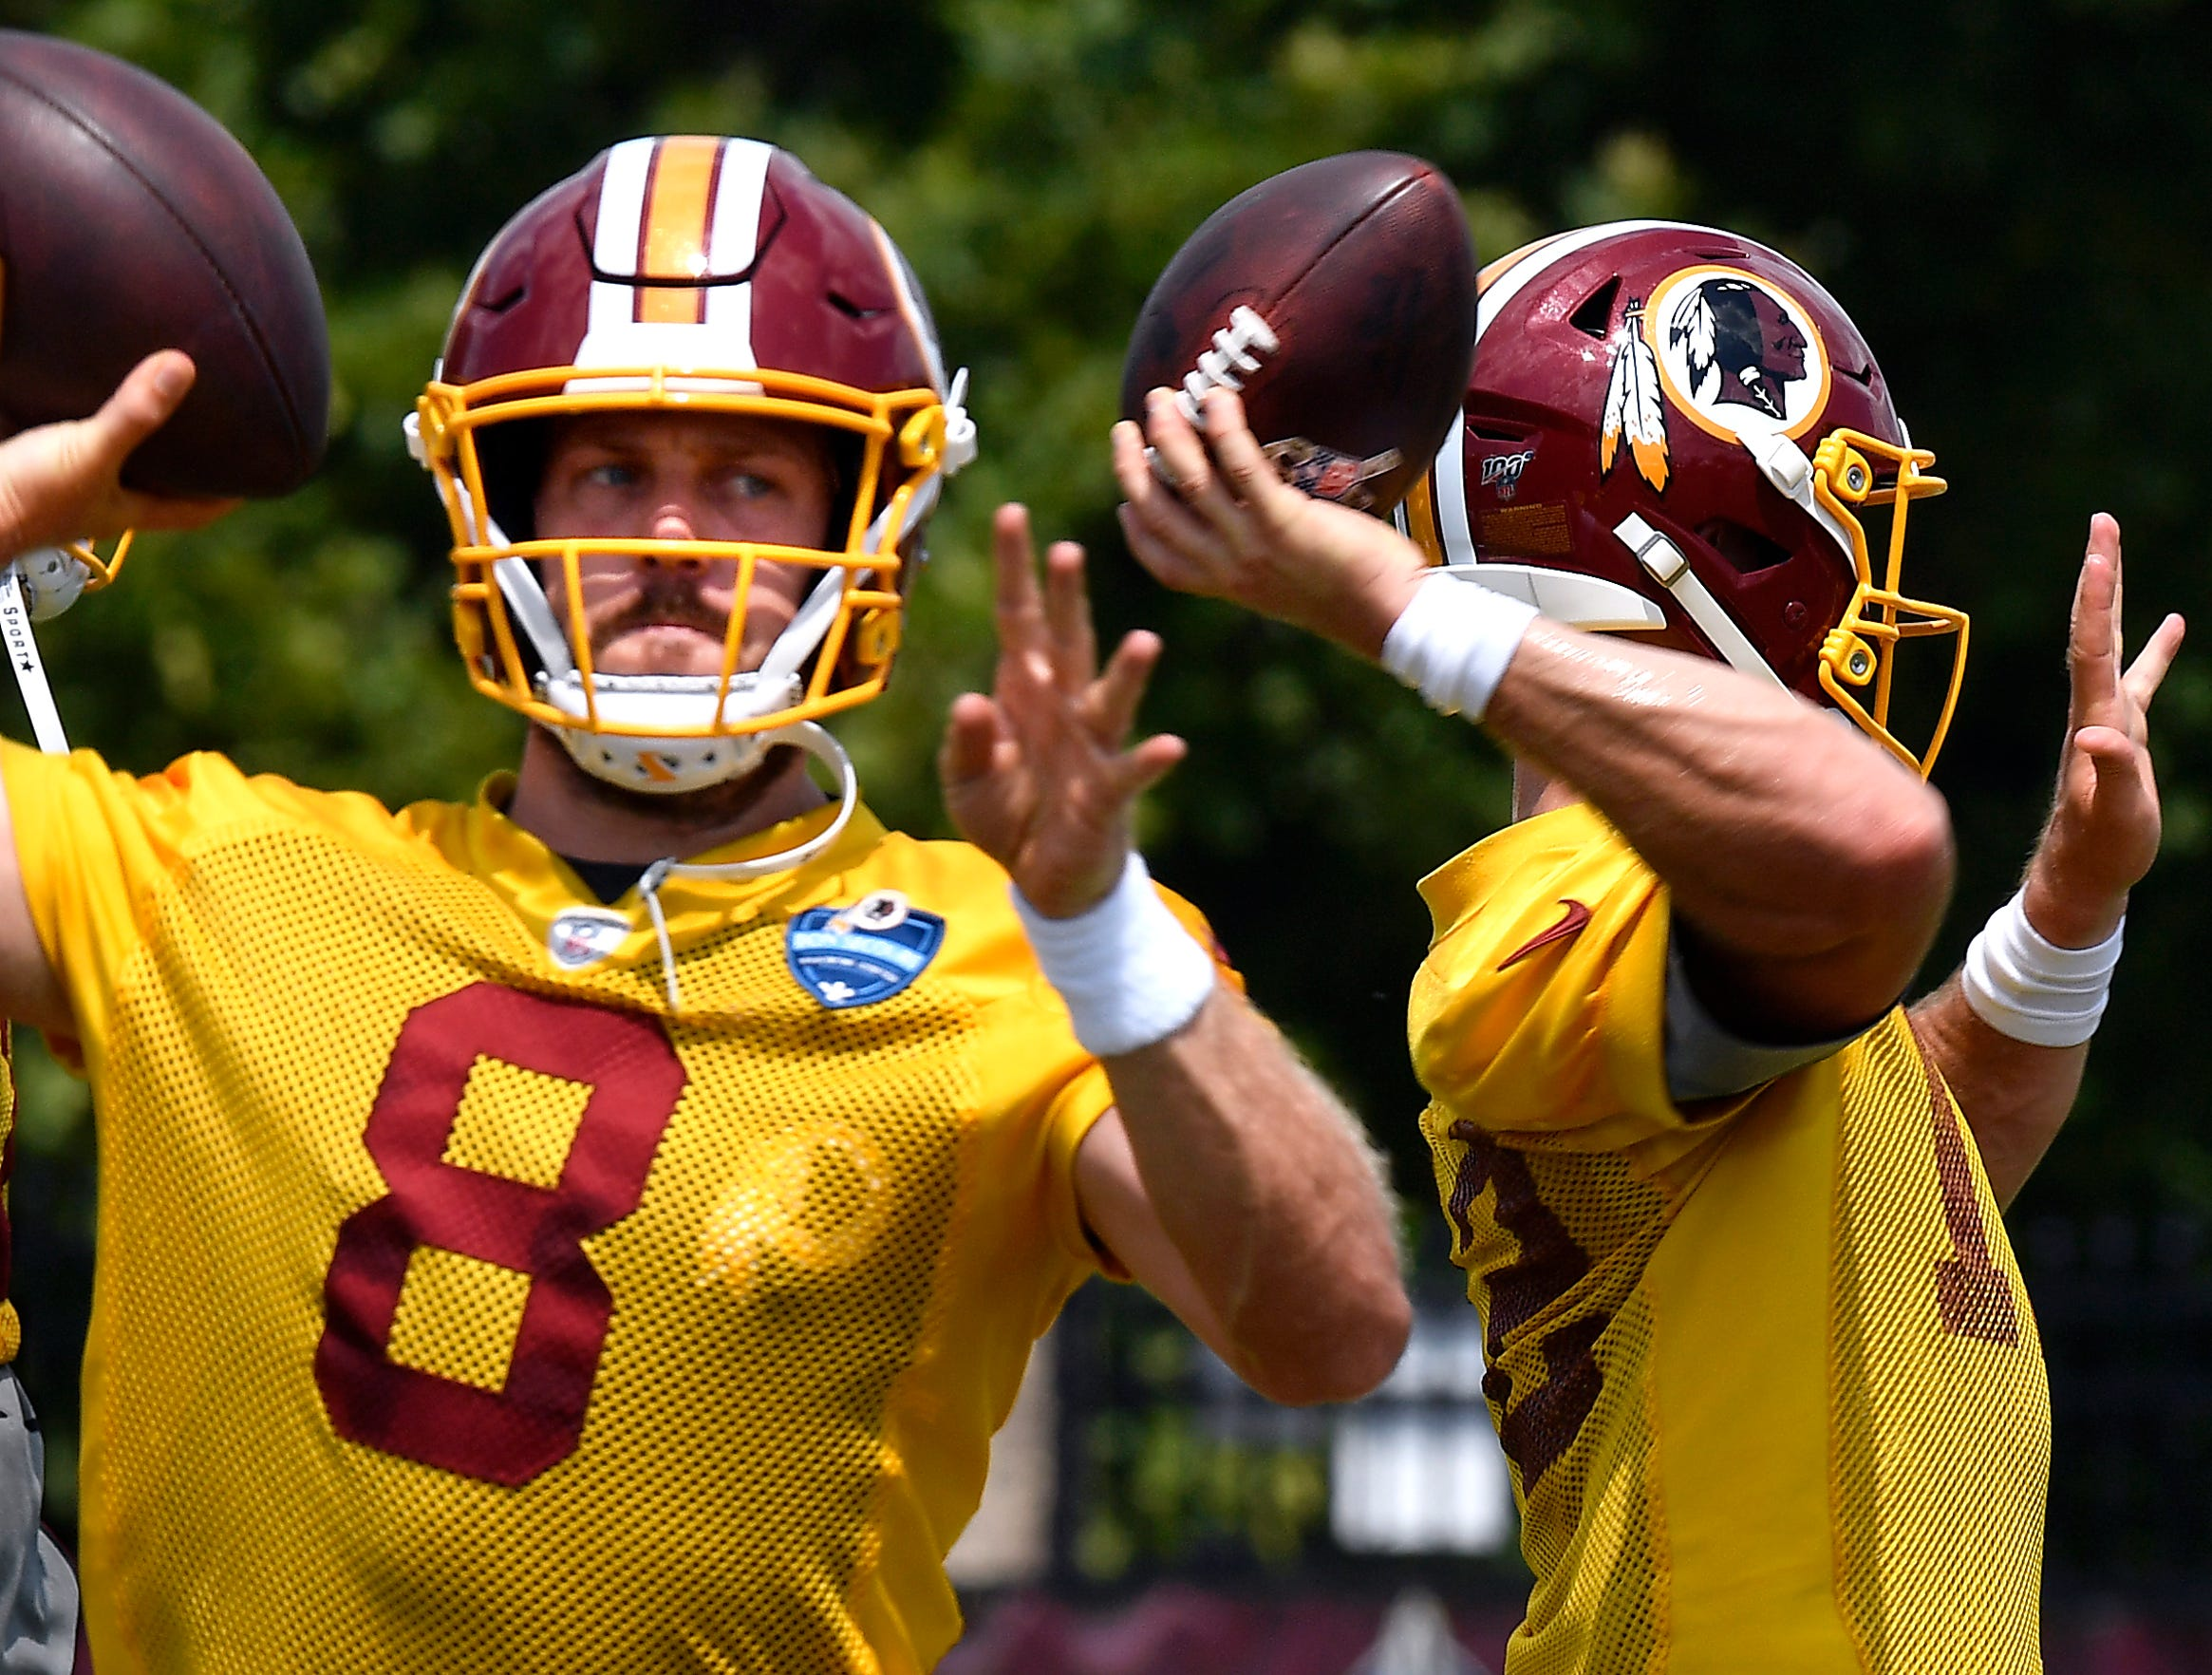 Quarterbacks Case Keenum (left) and Colt McCoy both throw passes during practice Washington Redskins training camp in Richmond, Va. Tuesday August 6, 2019. It was the last day of training camp before Thursday's pre-season game against Cleveland.